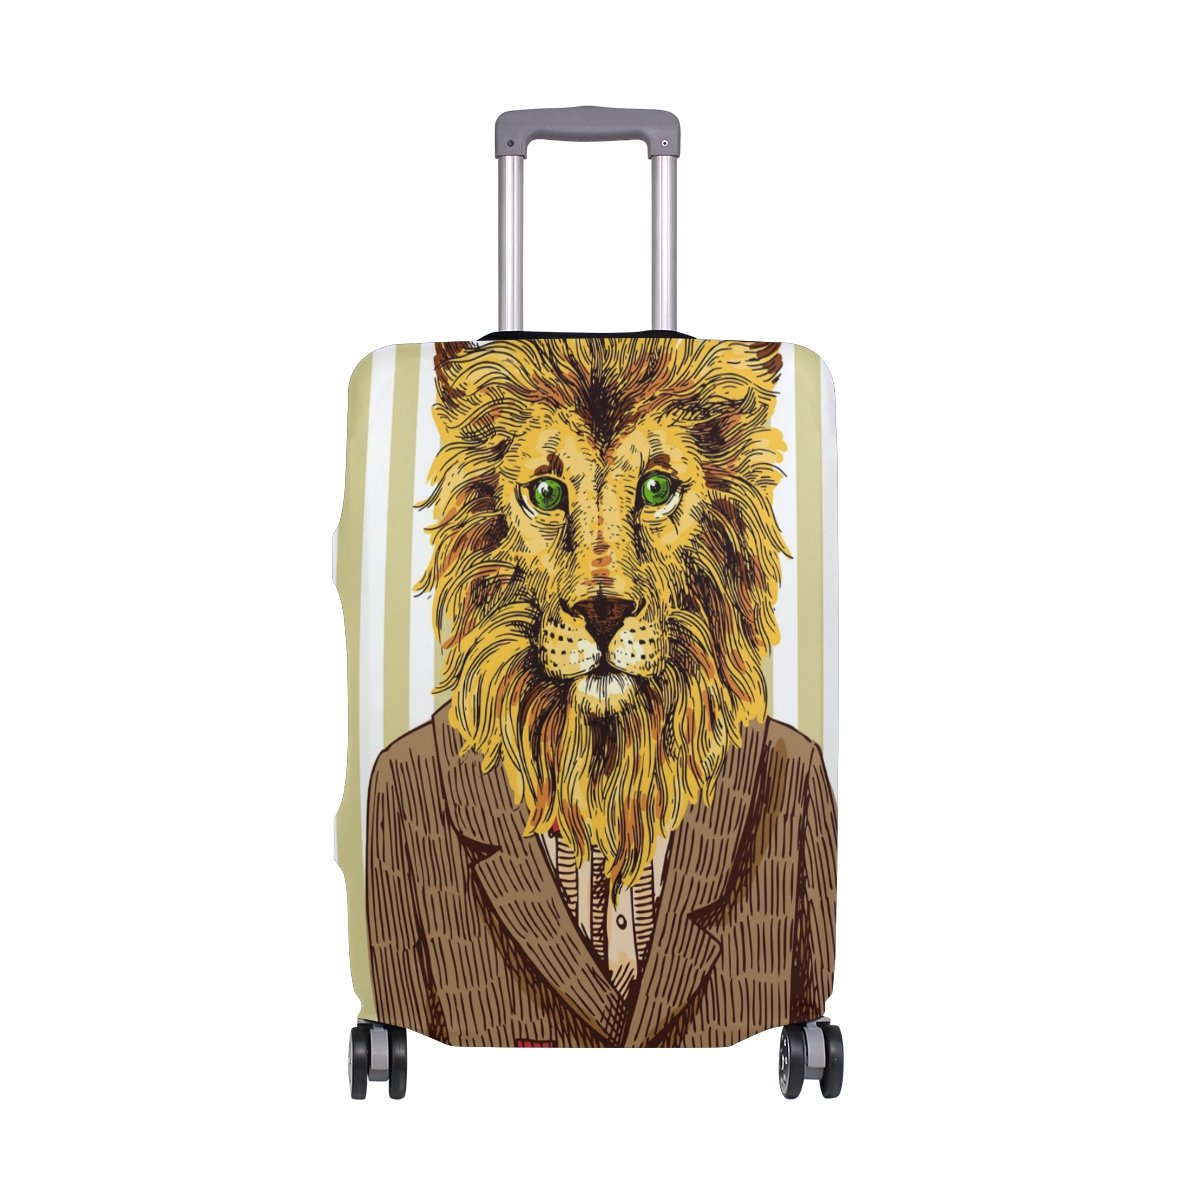 ALAZA Jacket Lion Stripe Luggage Cover Fits 30-32 Inch Suitcase Spandex Travel Protector XL